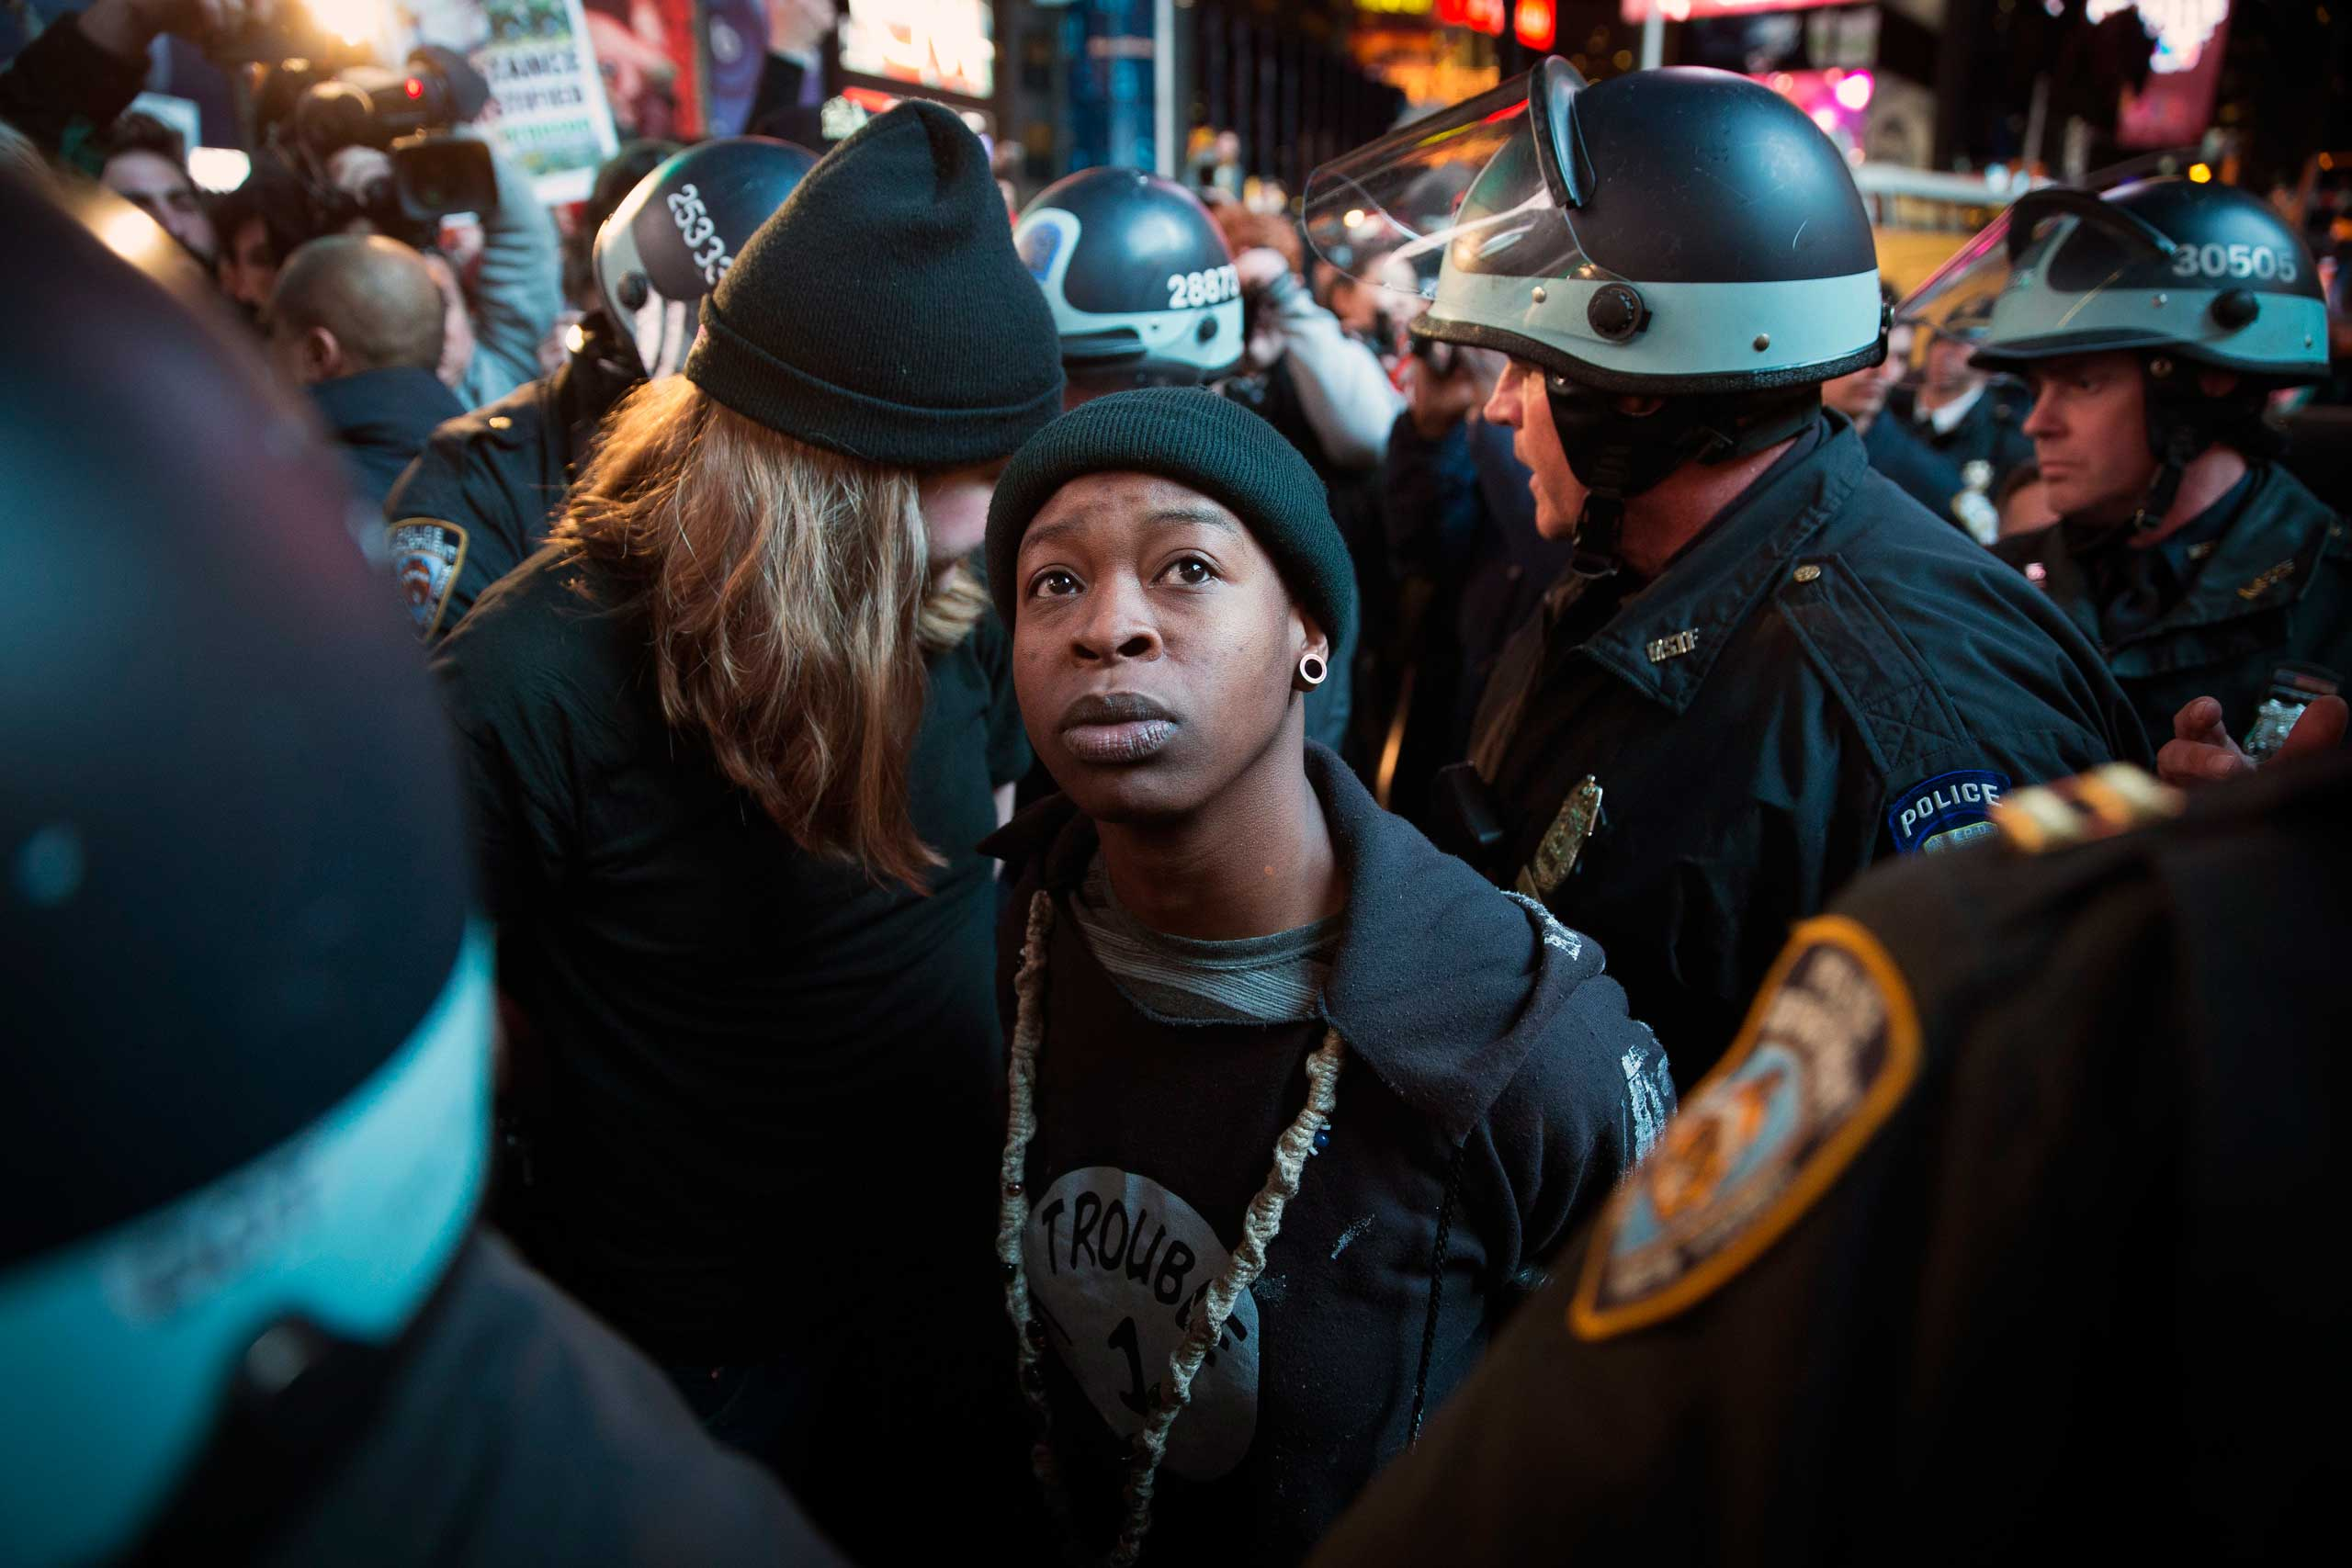 A demonstrator is arrested during a protest against the grand jury's decision, in New York City on Nov. 25, 2014.